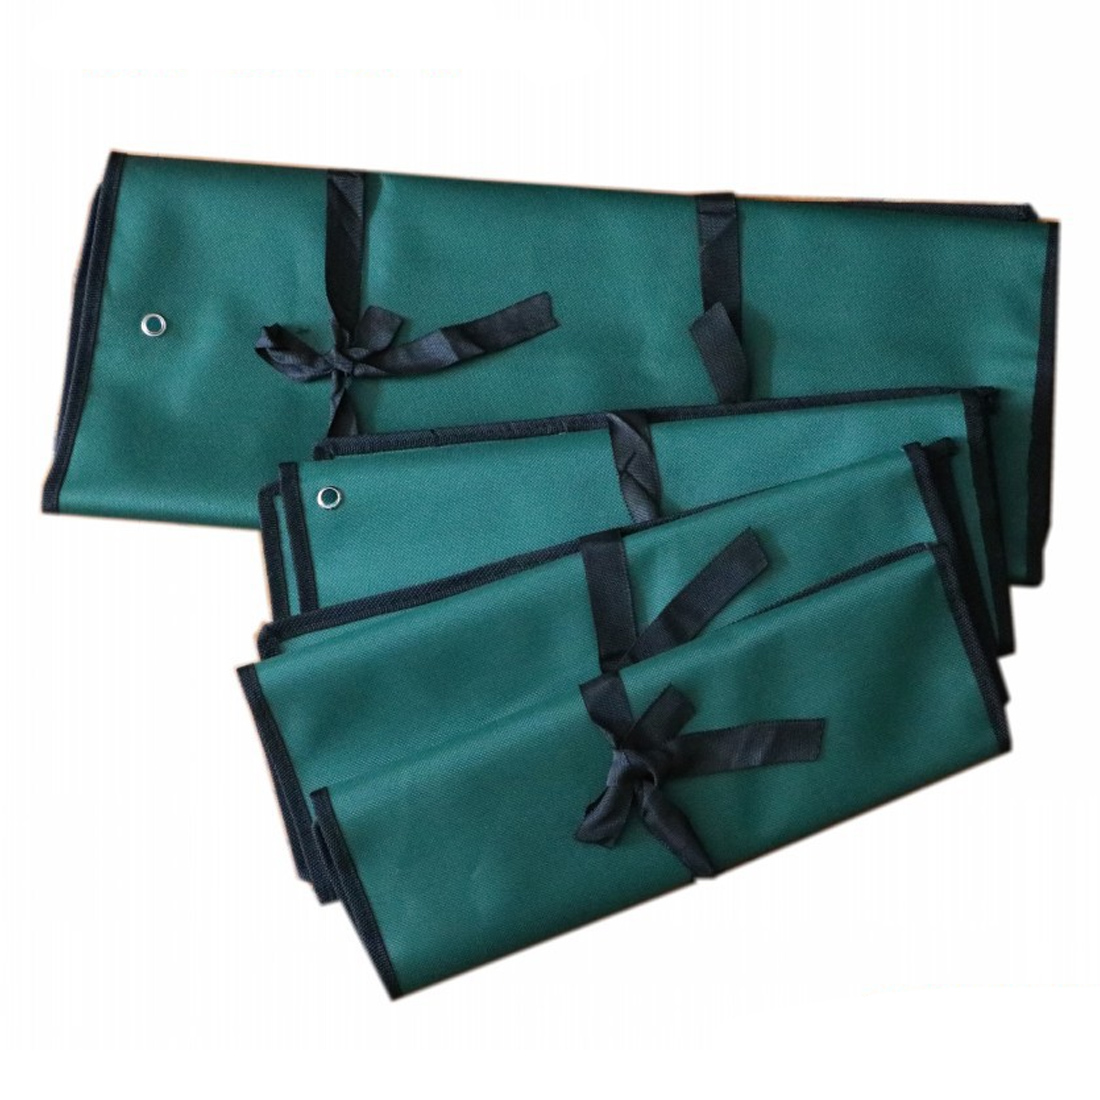 Kit Case Tool  Hardware Kit Pockets Double Opening Offset Ring SpannerBag Spanner Wrench Roll Up Storage Organizer Bag